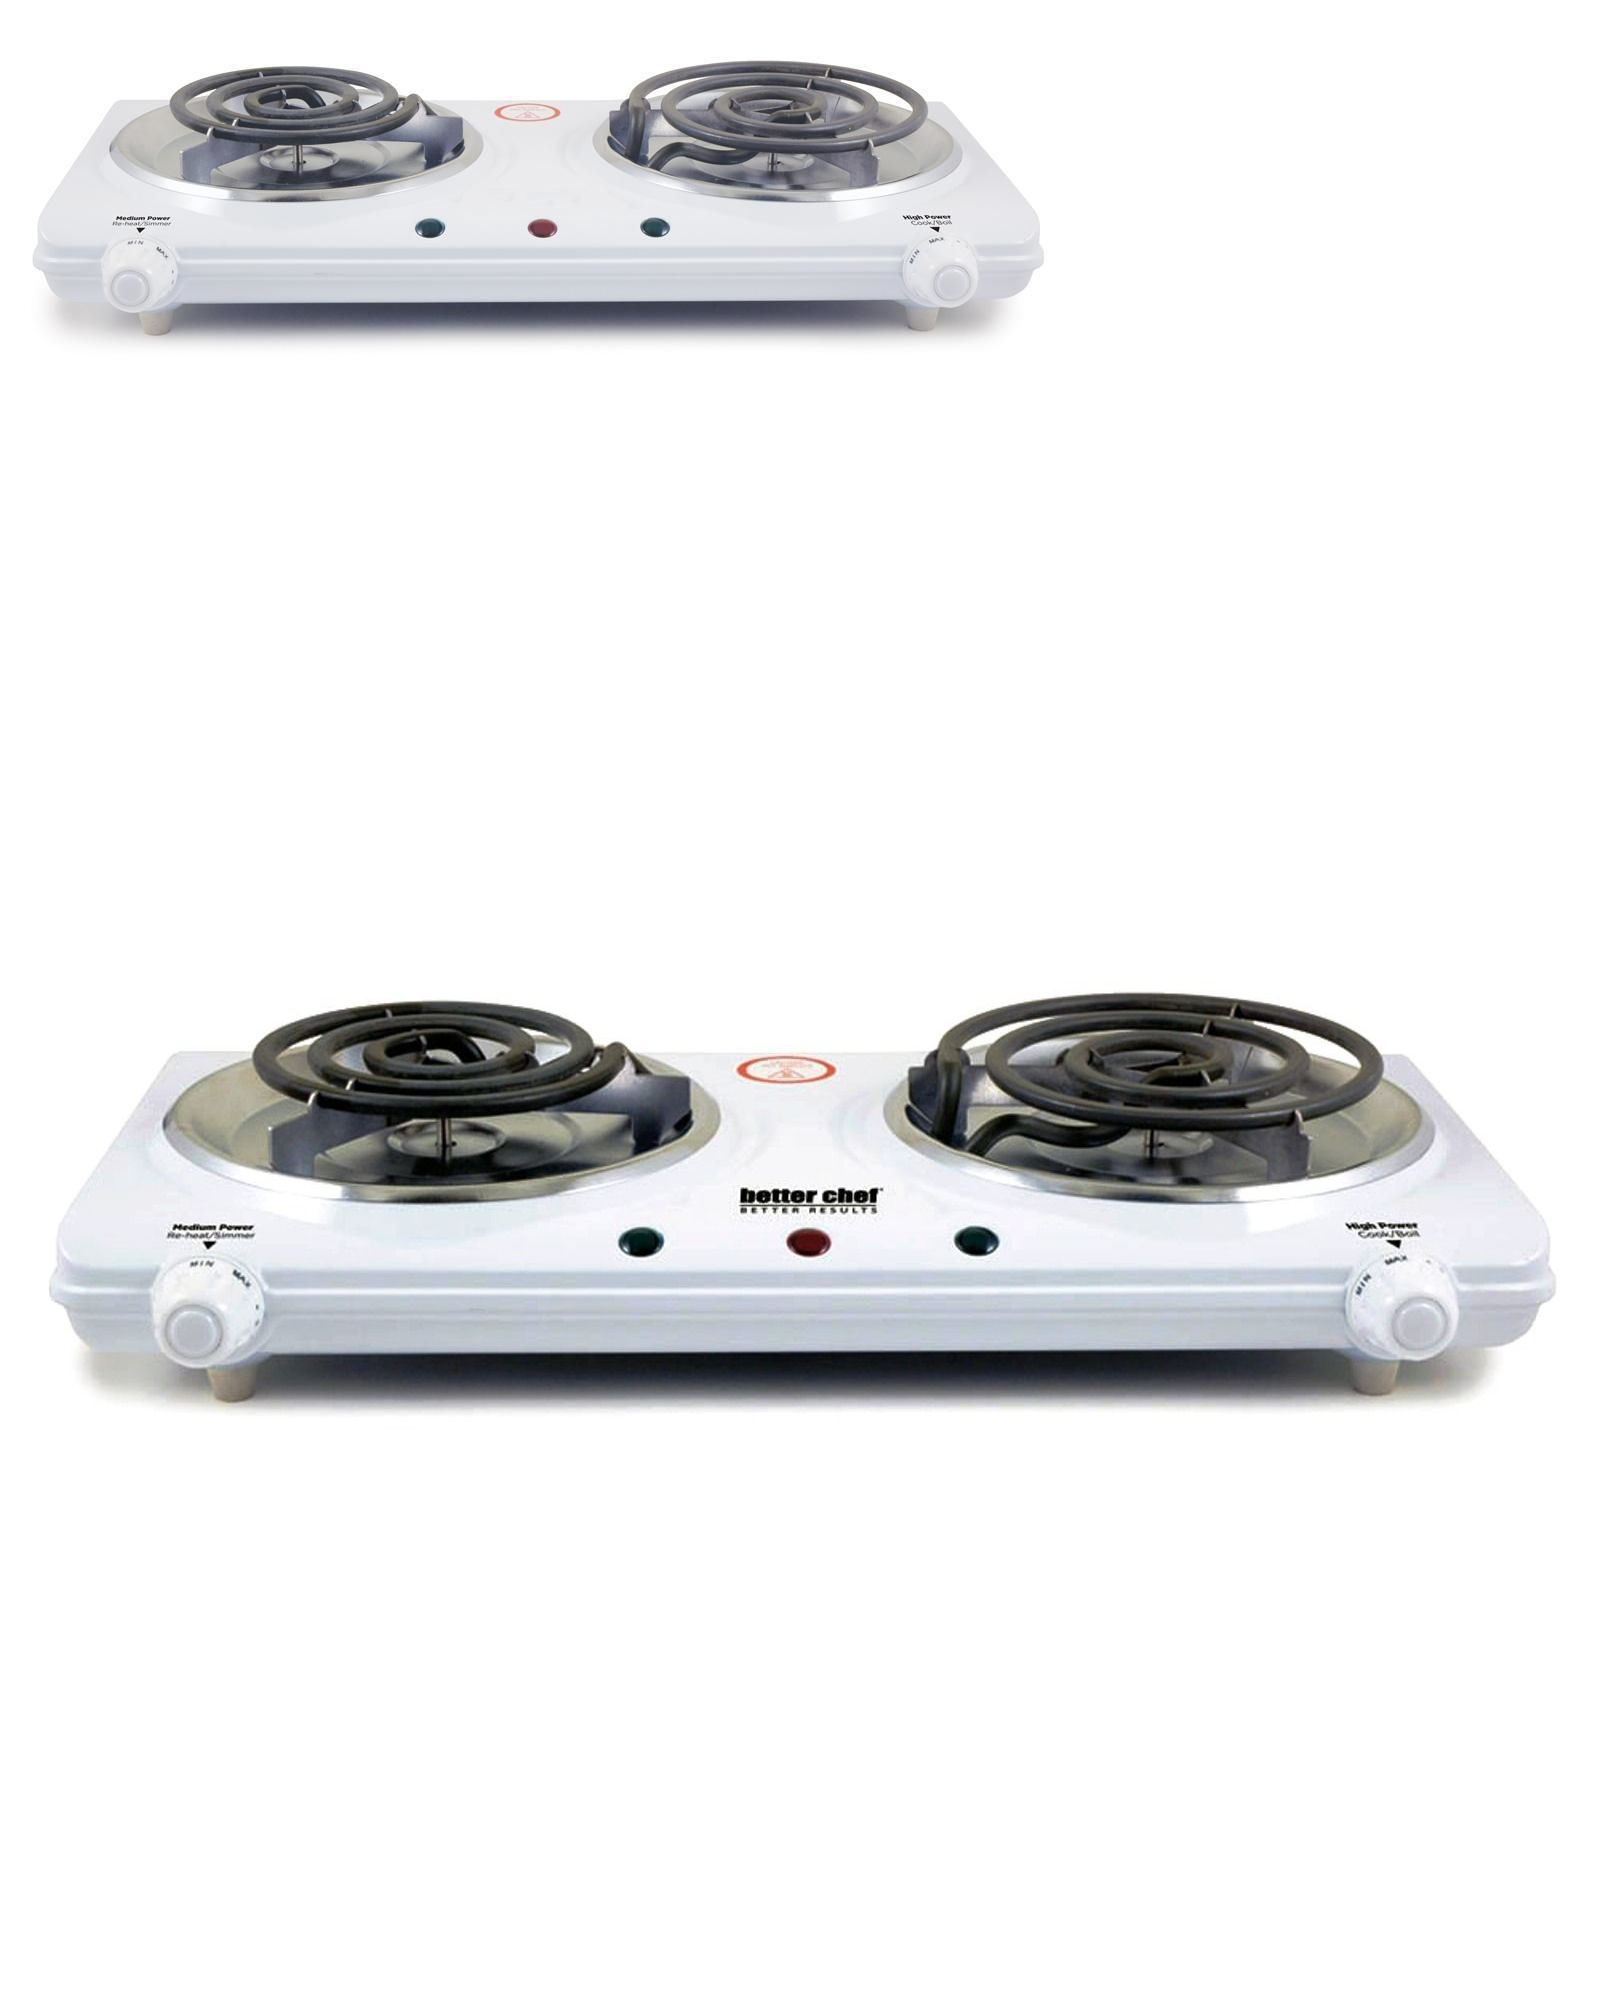 Burners And Hot Plates 177751 Portable Electric Dual 2 Burner Hot Plate Stove Top Cook Warmer Kitchen Im 306db Buy It Now Warm Kitchen Hot Plates Hot Plate